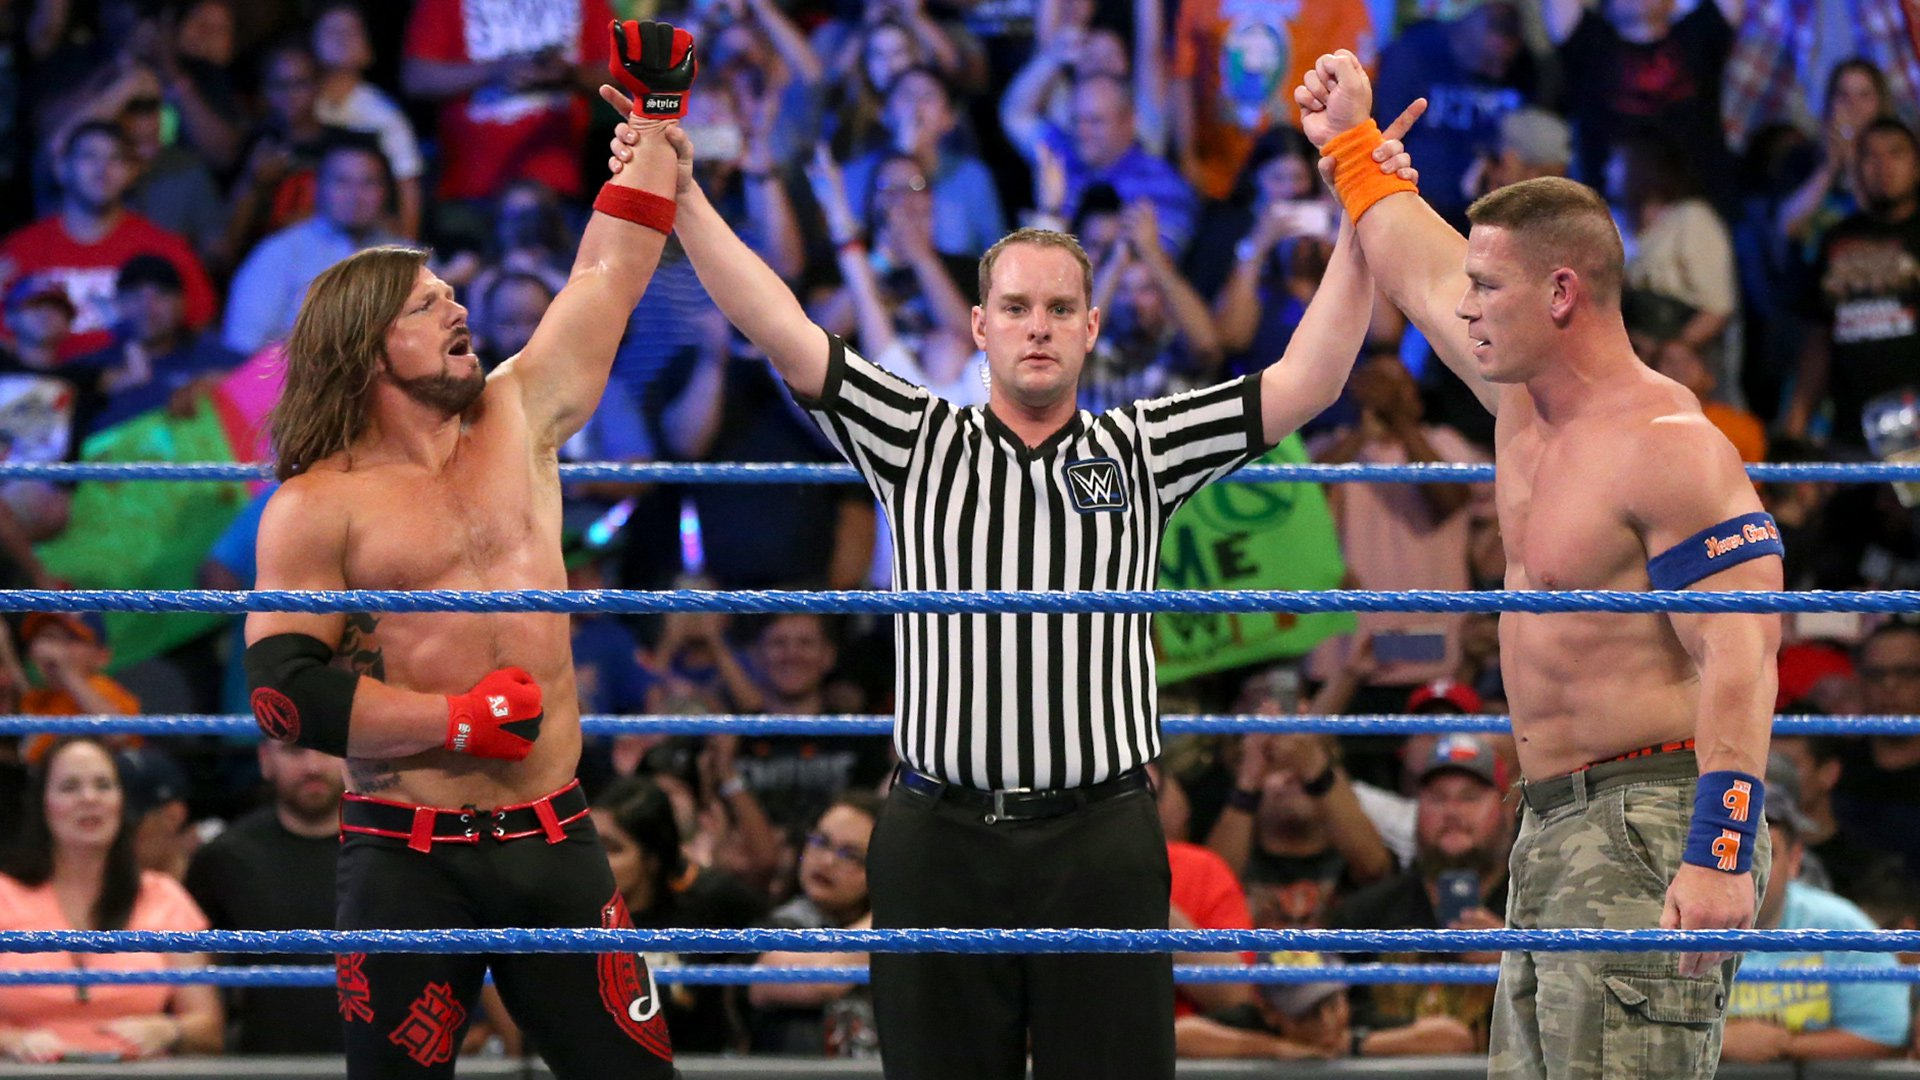 Styles and Cena stand victorious...